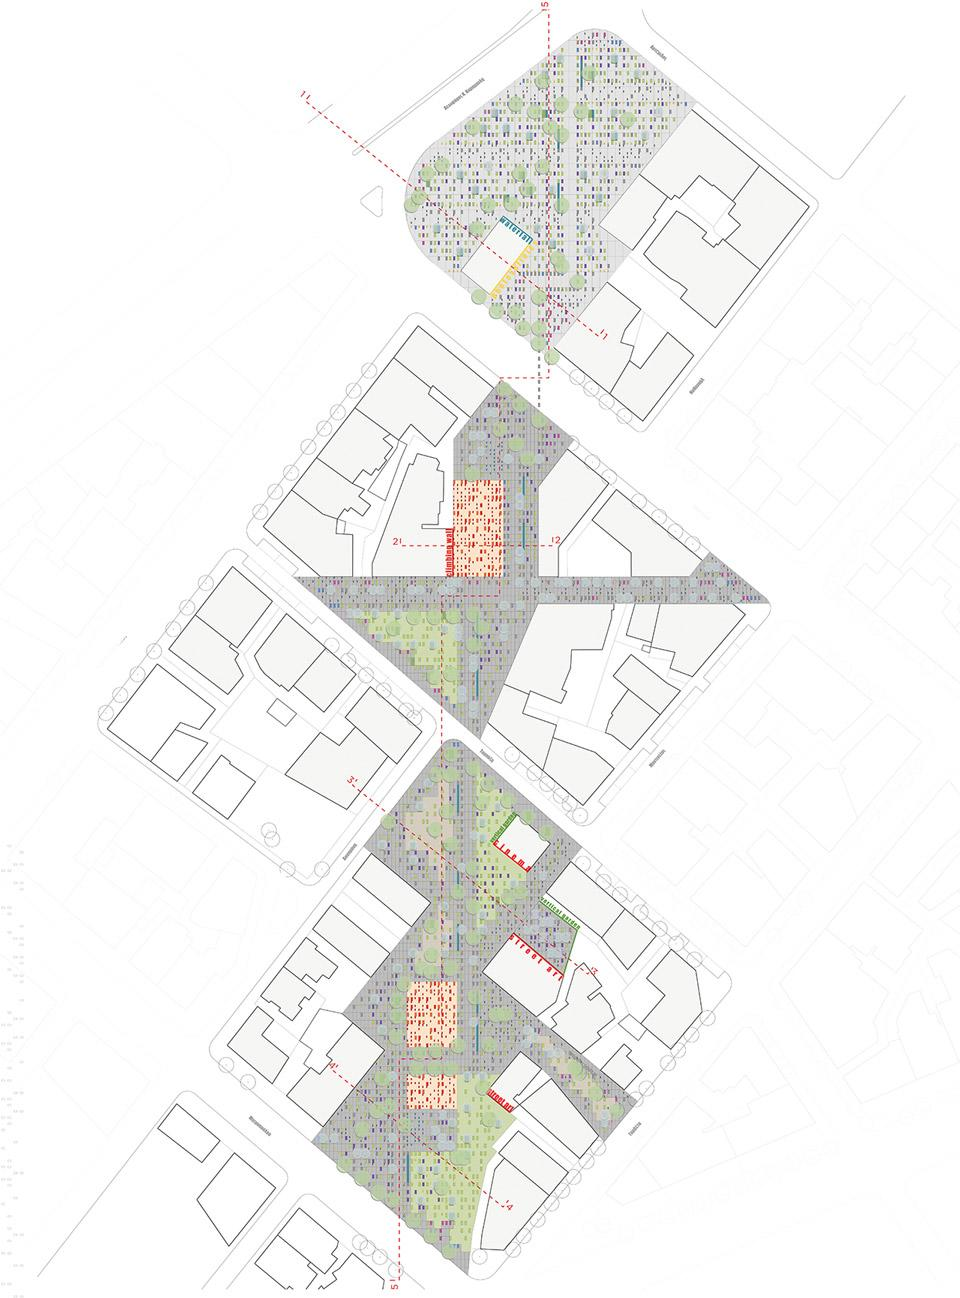 Urban-Threads-Polytopon-Architecture-Studio-plan